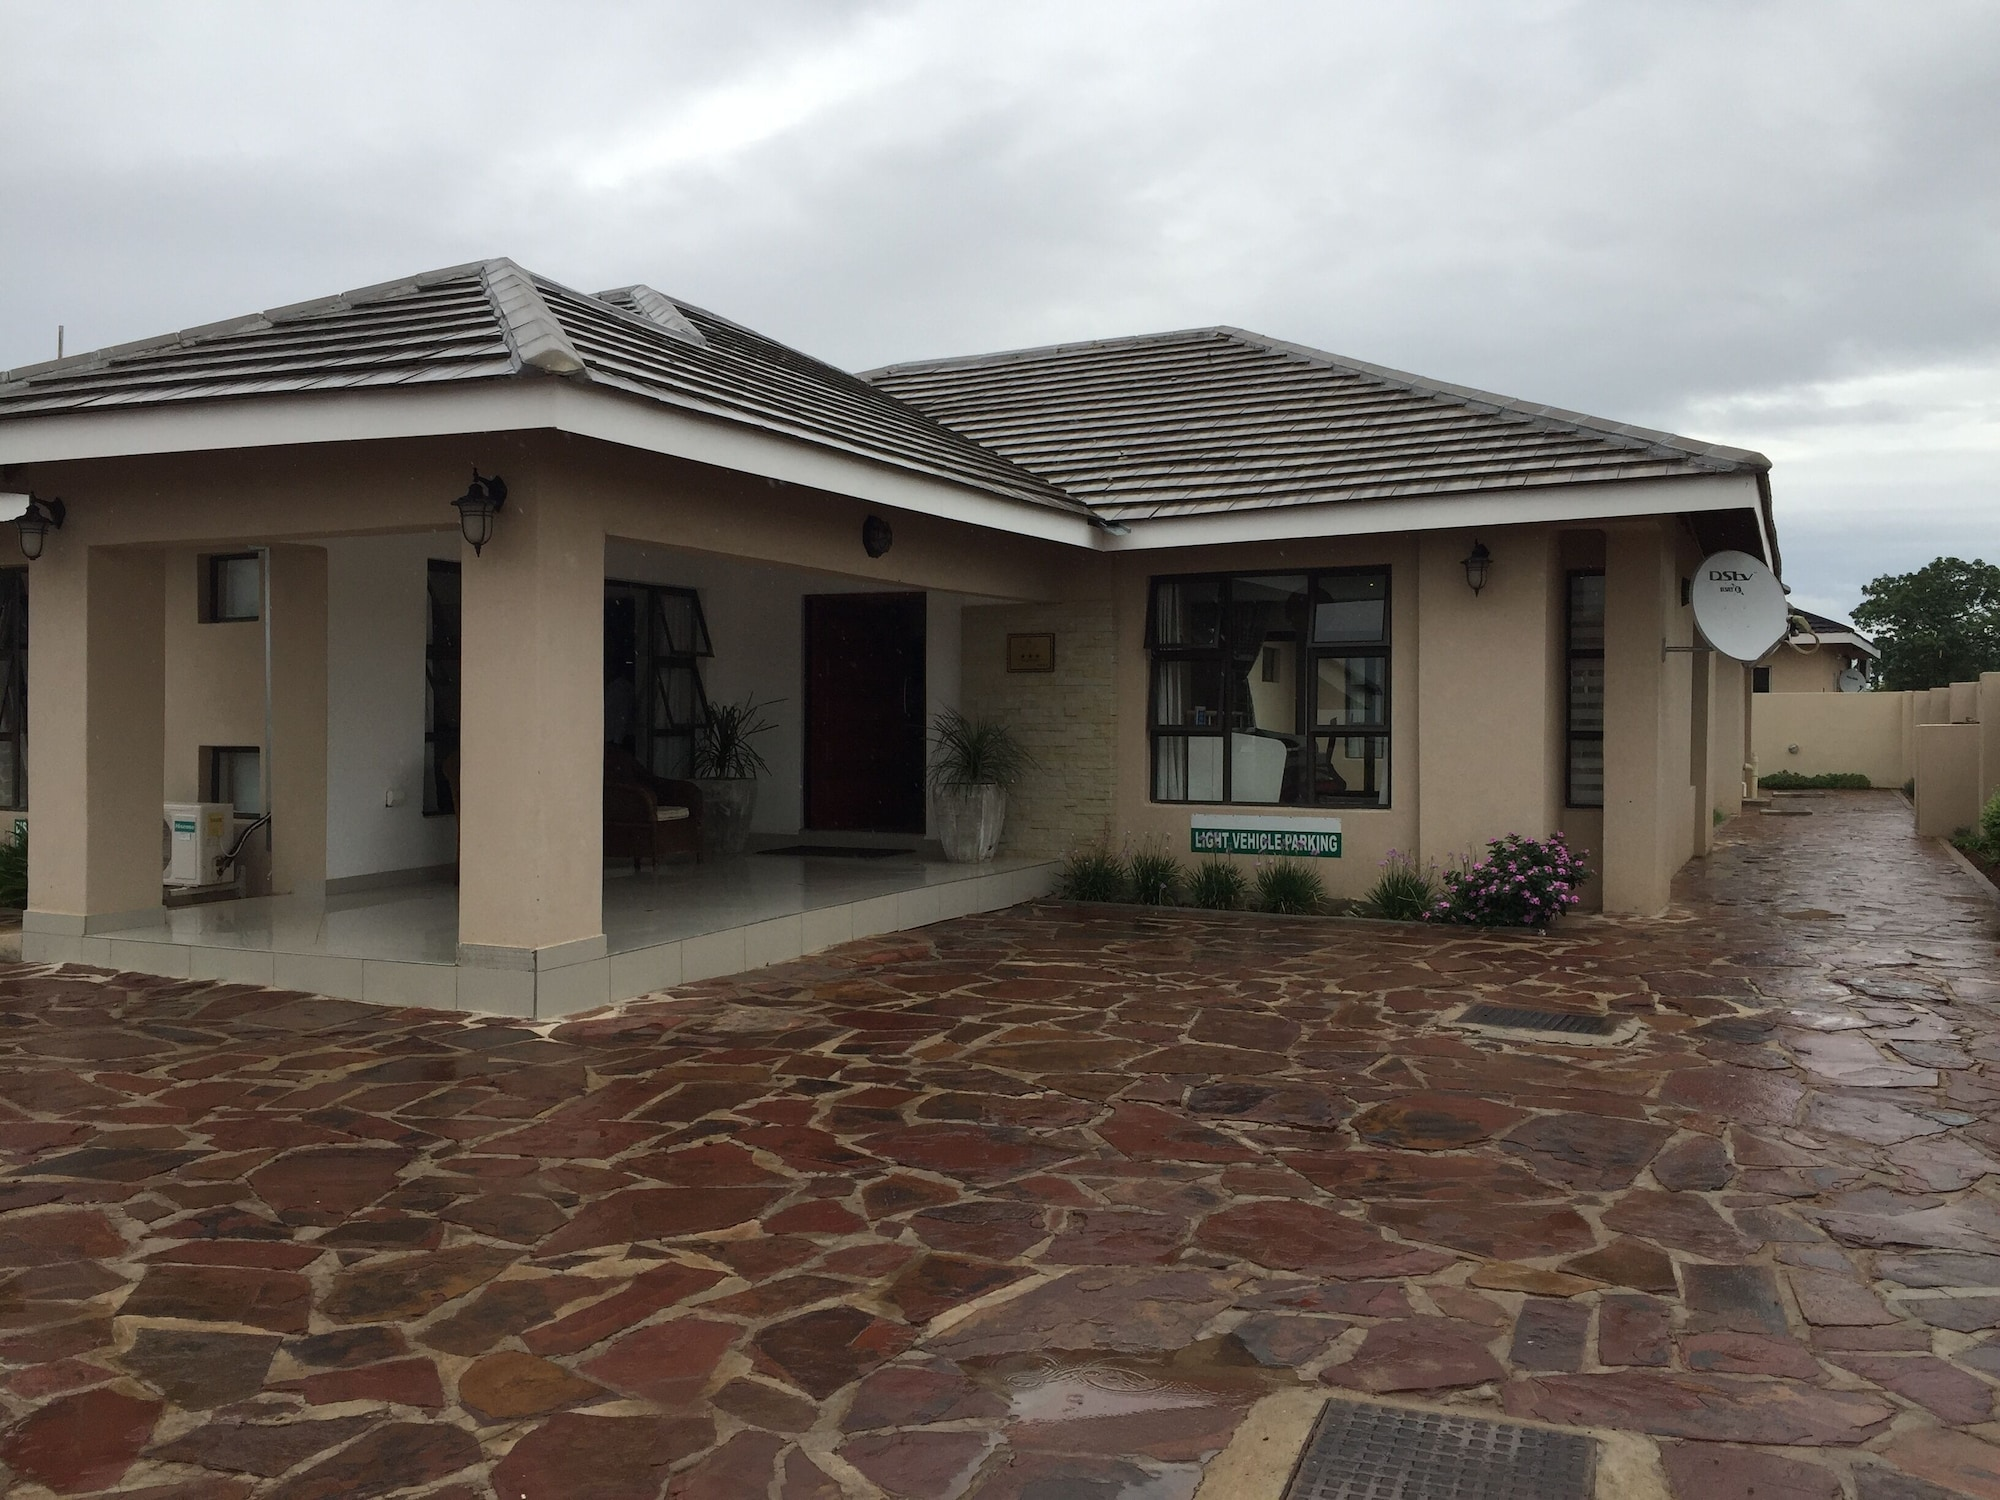 Royal Court Guest House, Lethlakane